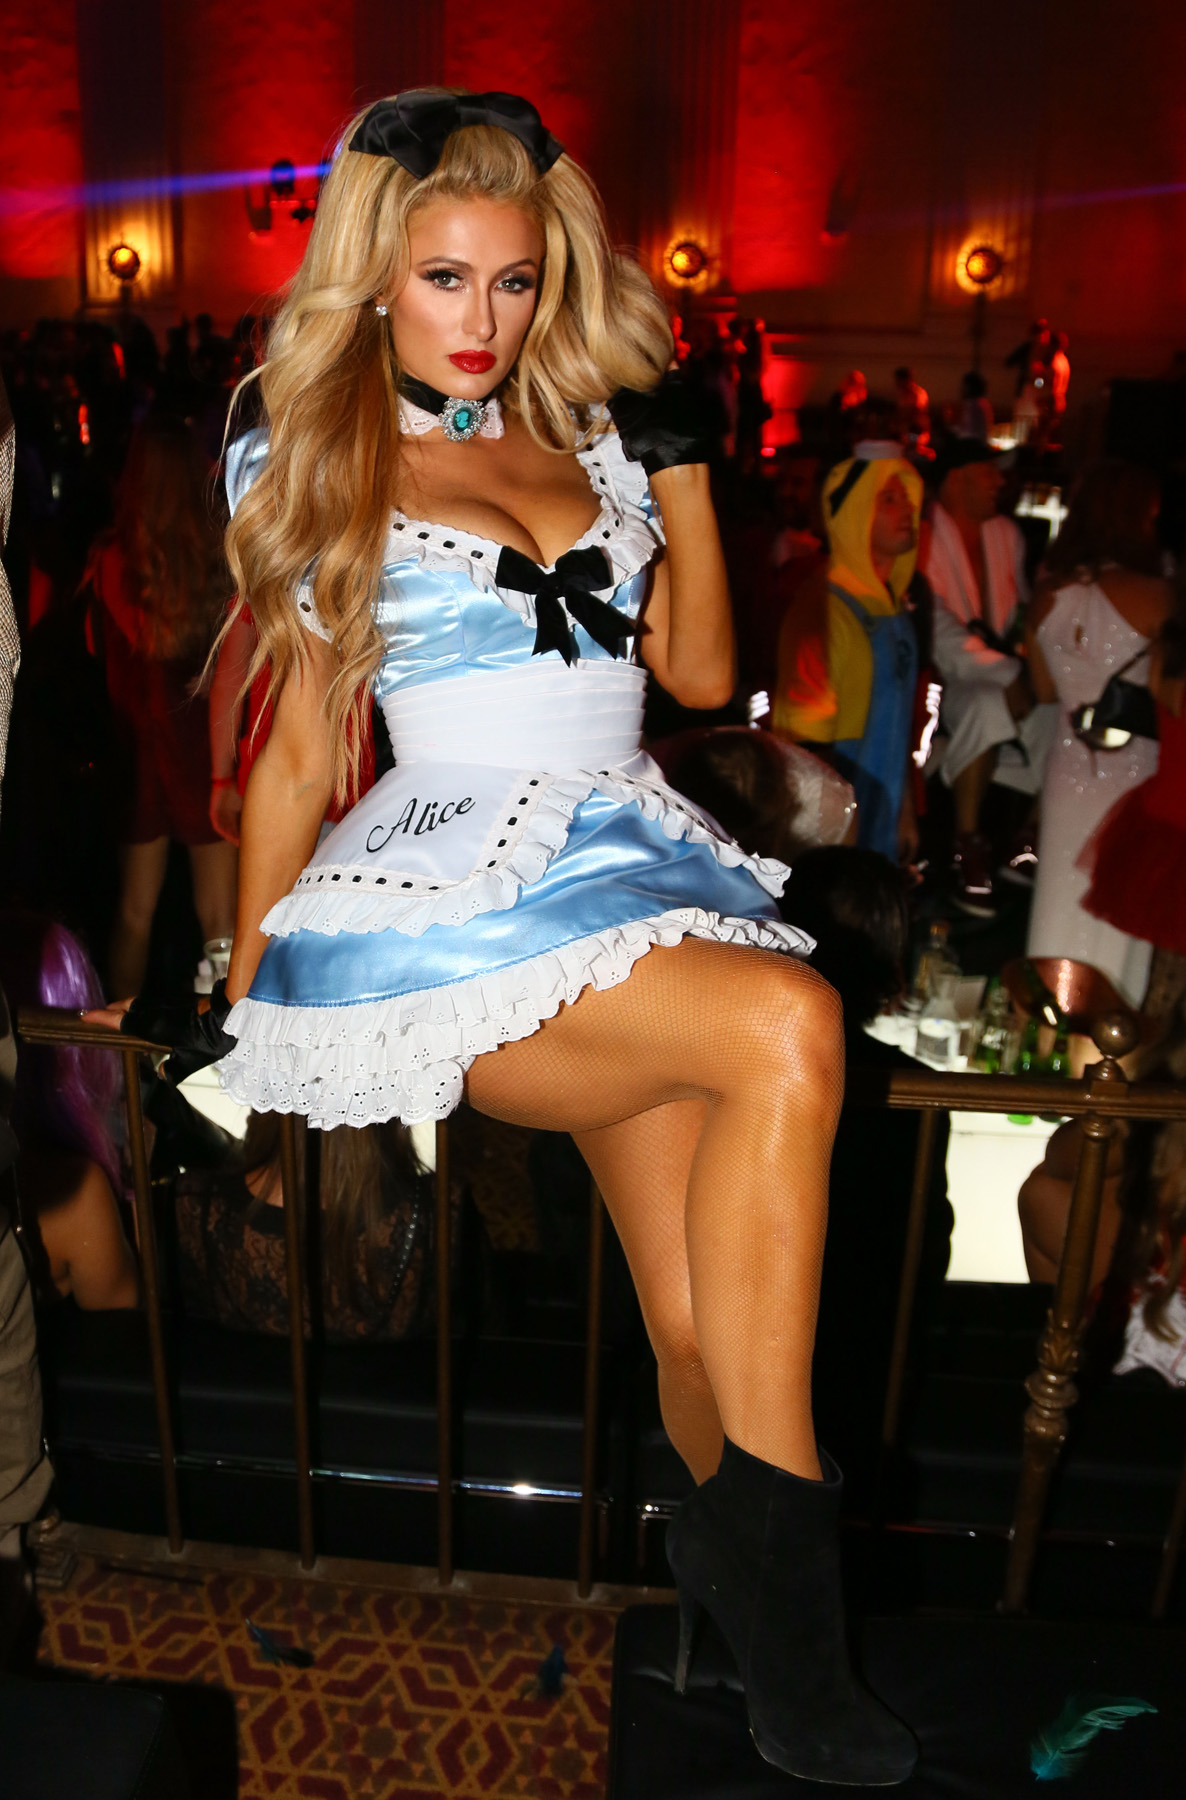 sexiest, scariest & silliest celebrity halloween costumes of 2016